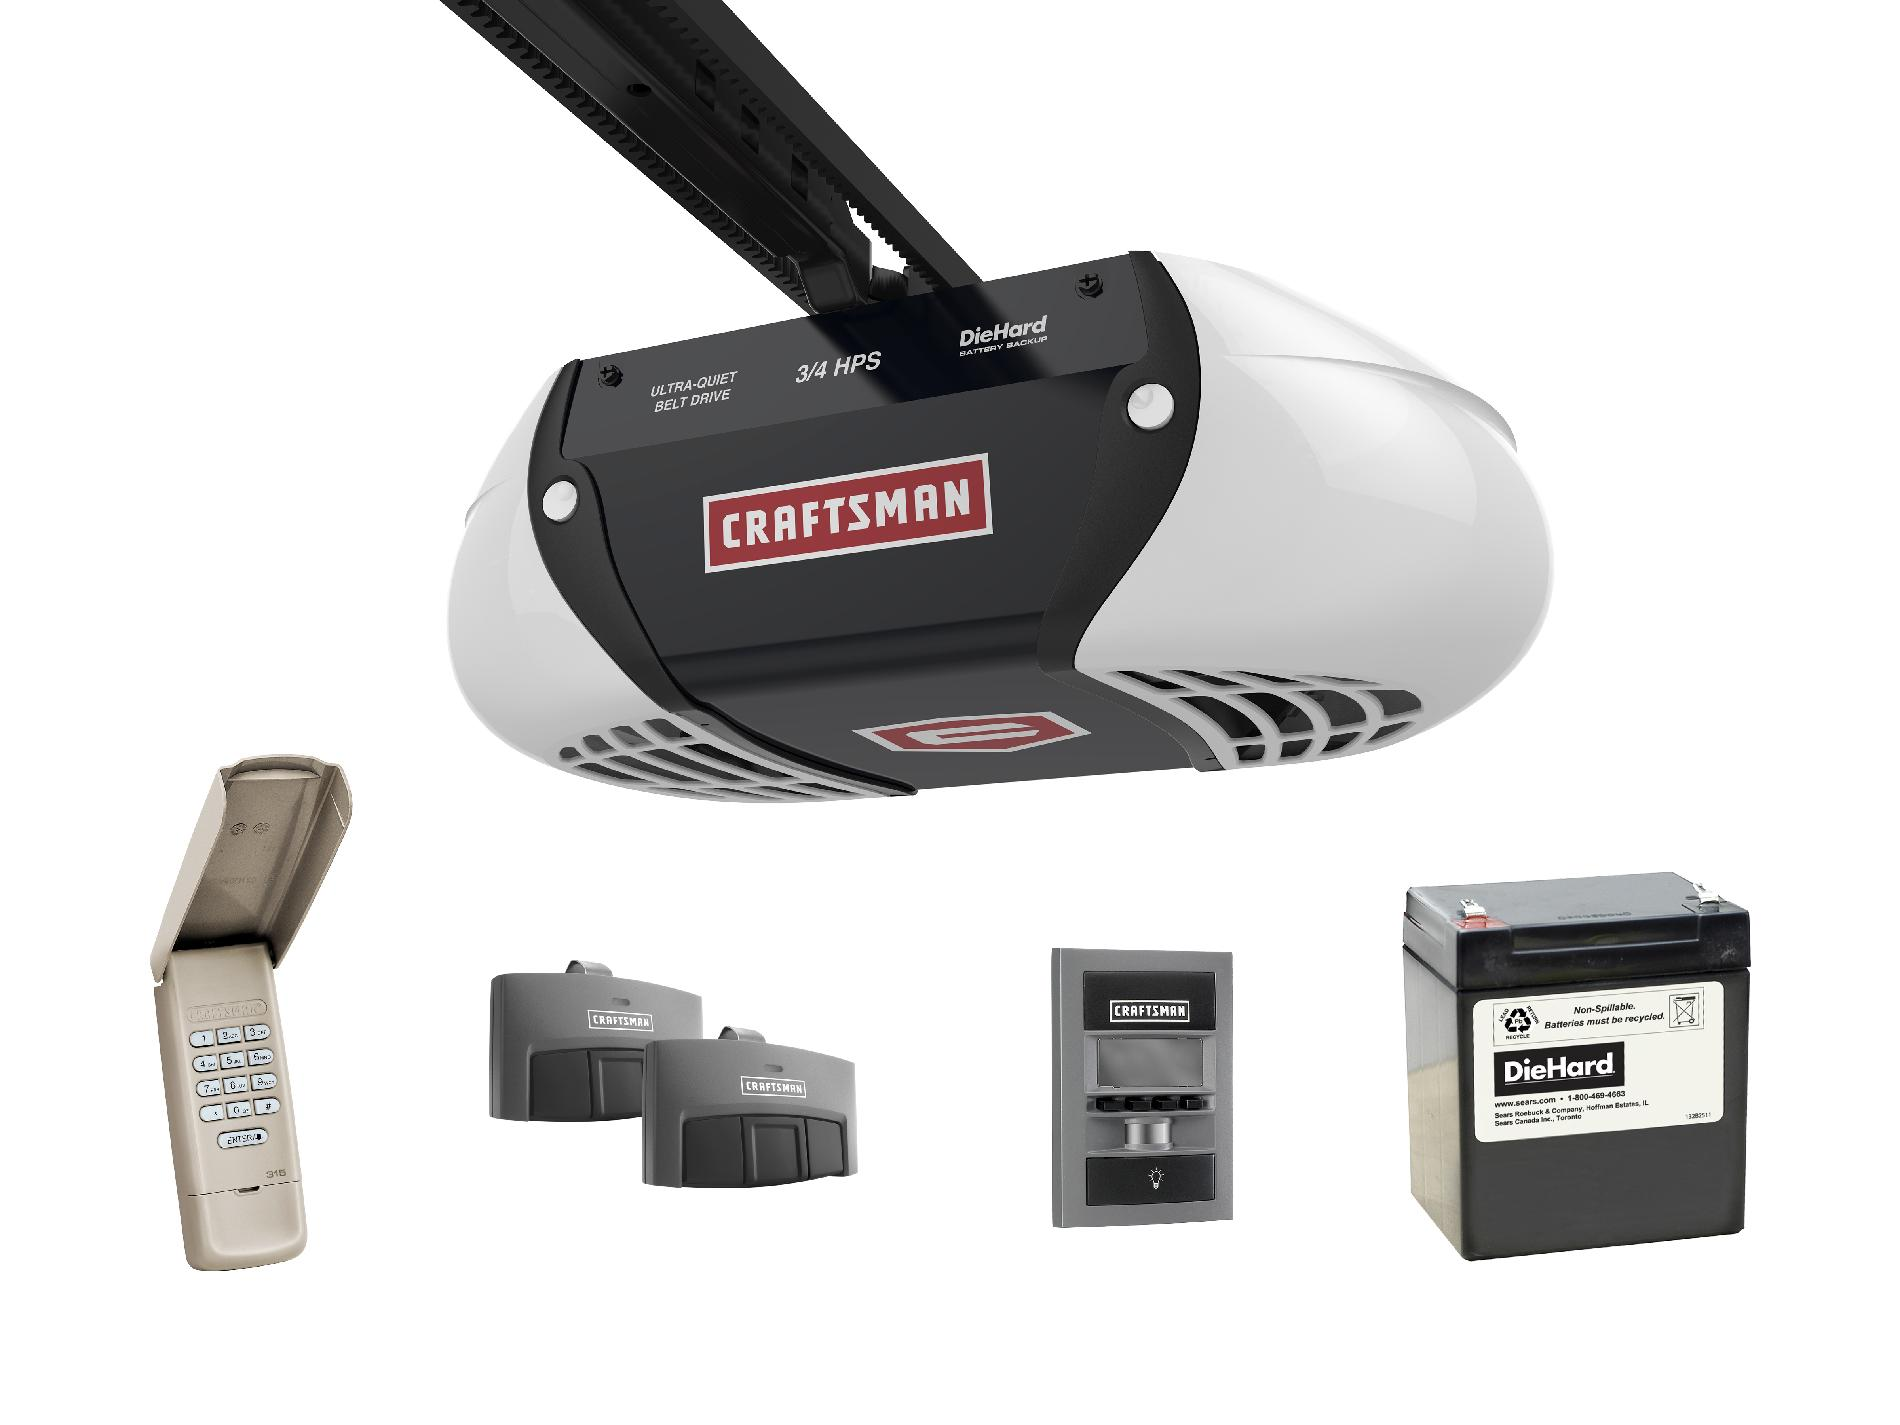 Craftsman 54918 34 Horsepower DieHard Battery Backup UltraQuiet Belt Drive Garage Door Opener